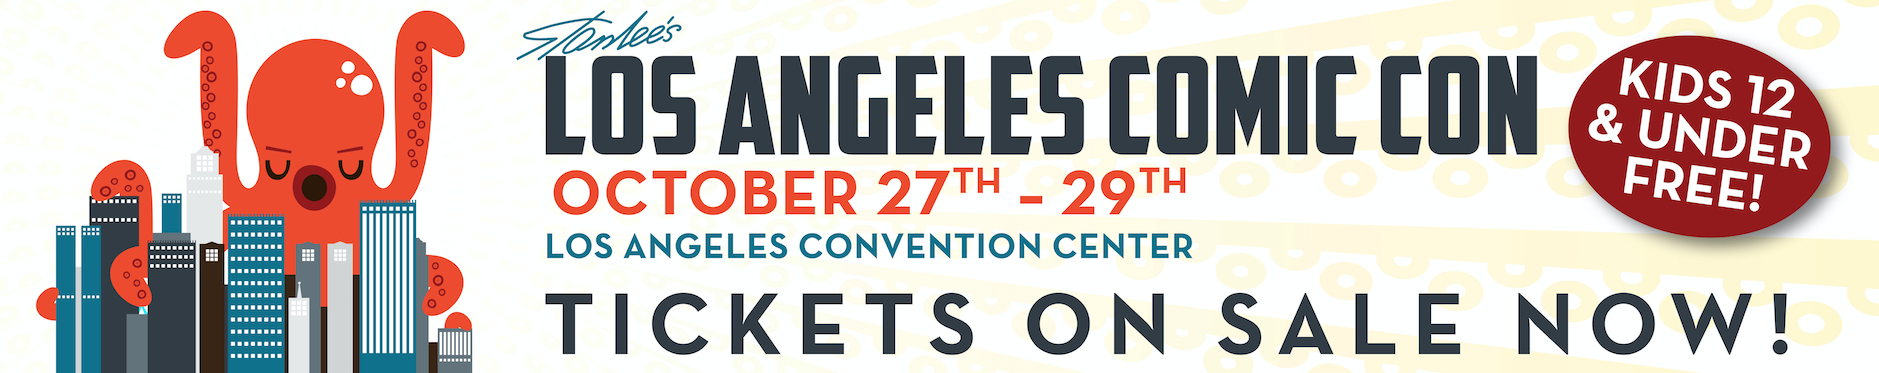 Tickets for Stan Lee's L.A. Comic Con 2016 in Los Angeles from ShowClix